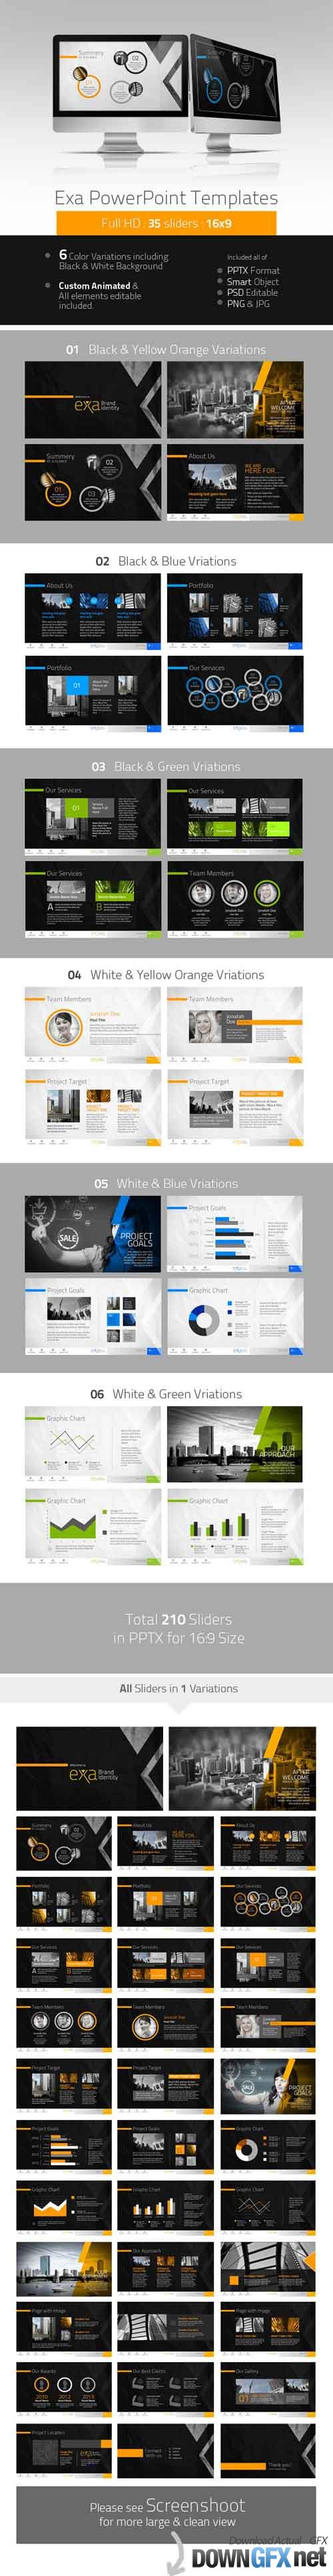 GR - Exa Creative PowerPoint Presentation 4741238